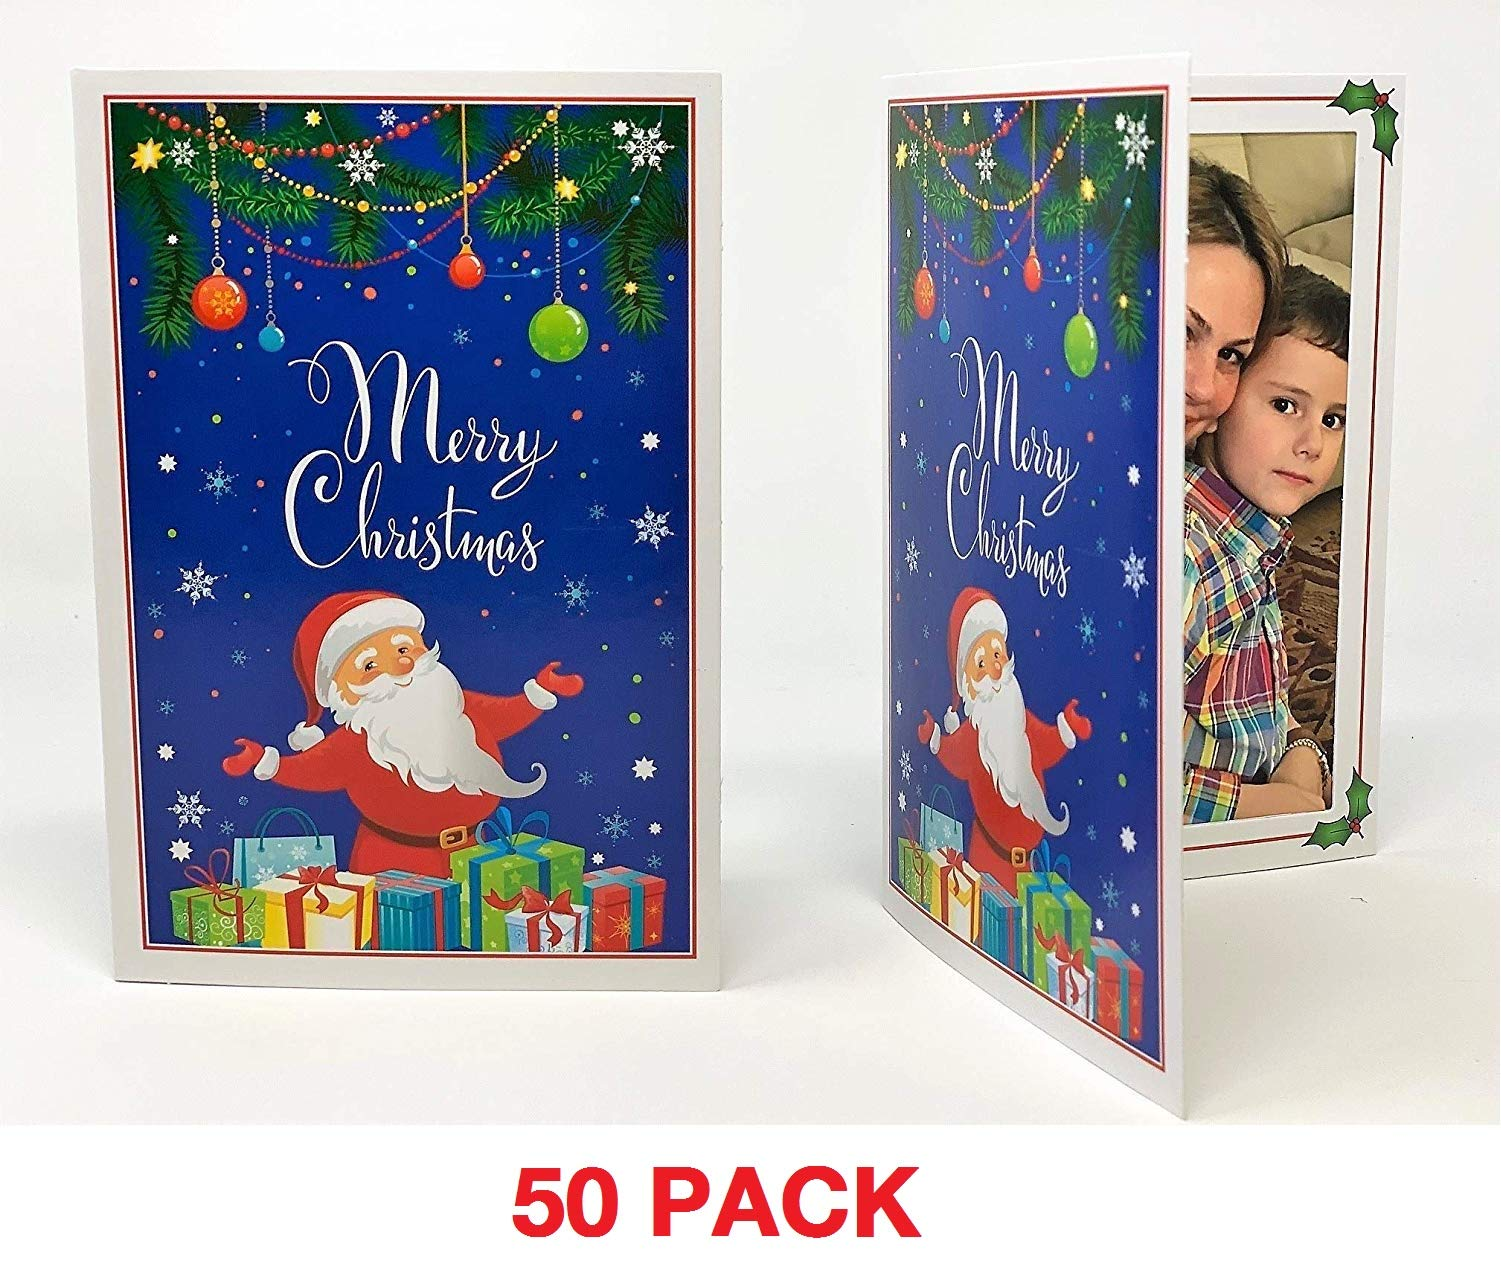 Santa Claus 4x6 Photo Folder - Pack of 50 folders (Slide-in Insert Type). These Beautiful Holiday Photo folders are Great for Christmas Parties and Santa Portraits! by Eventprinters